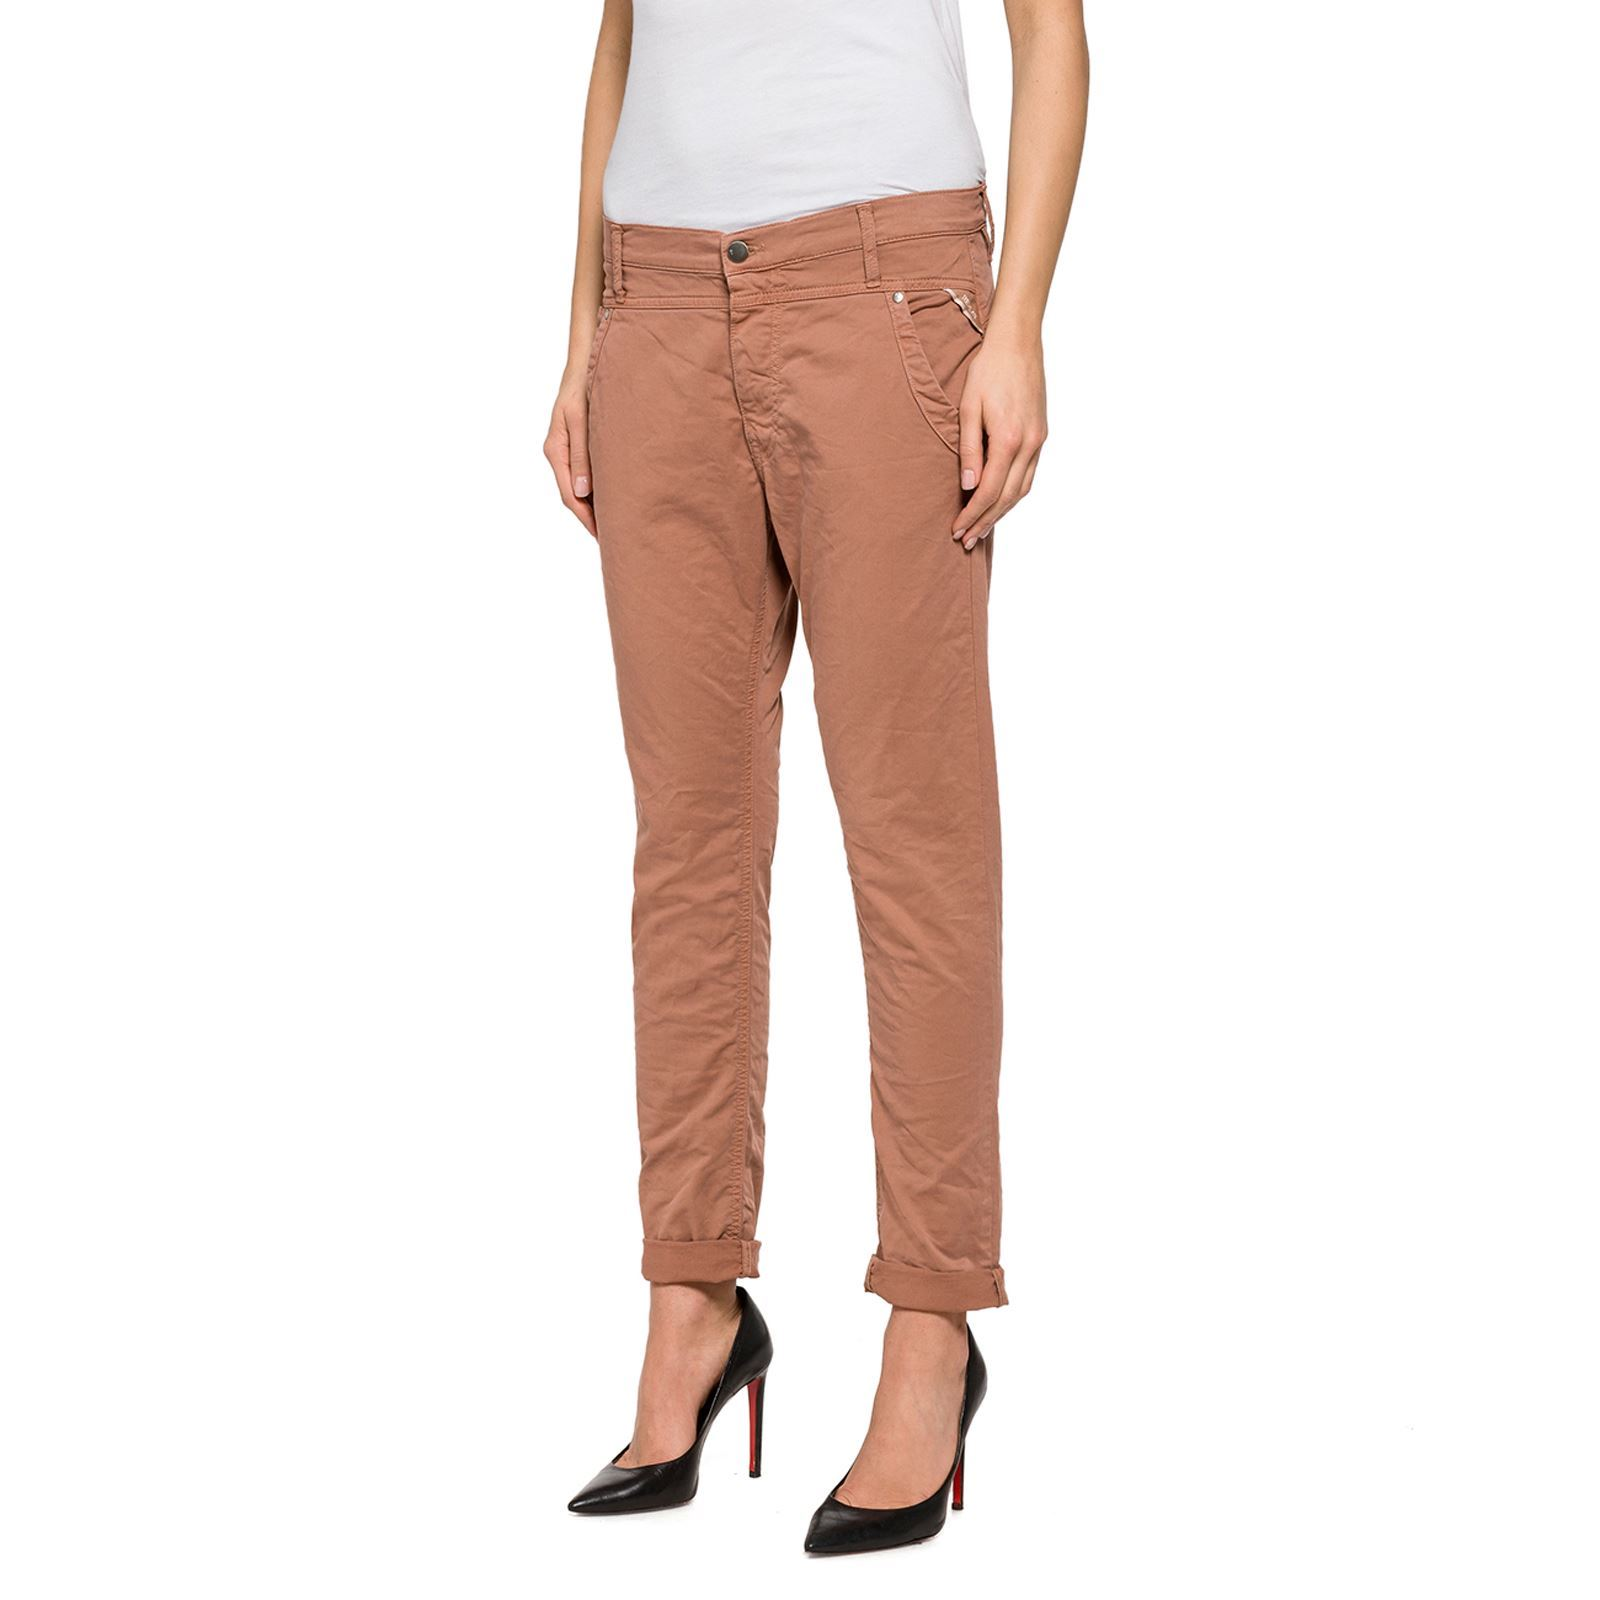 Pantalon  Marron Clair